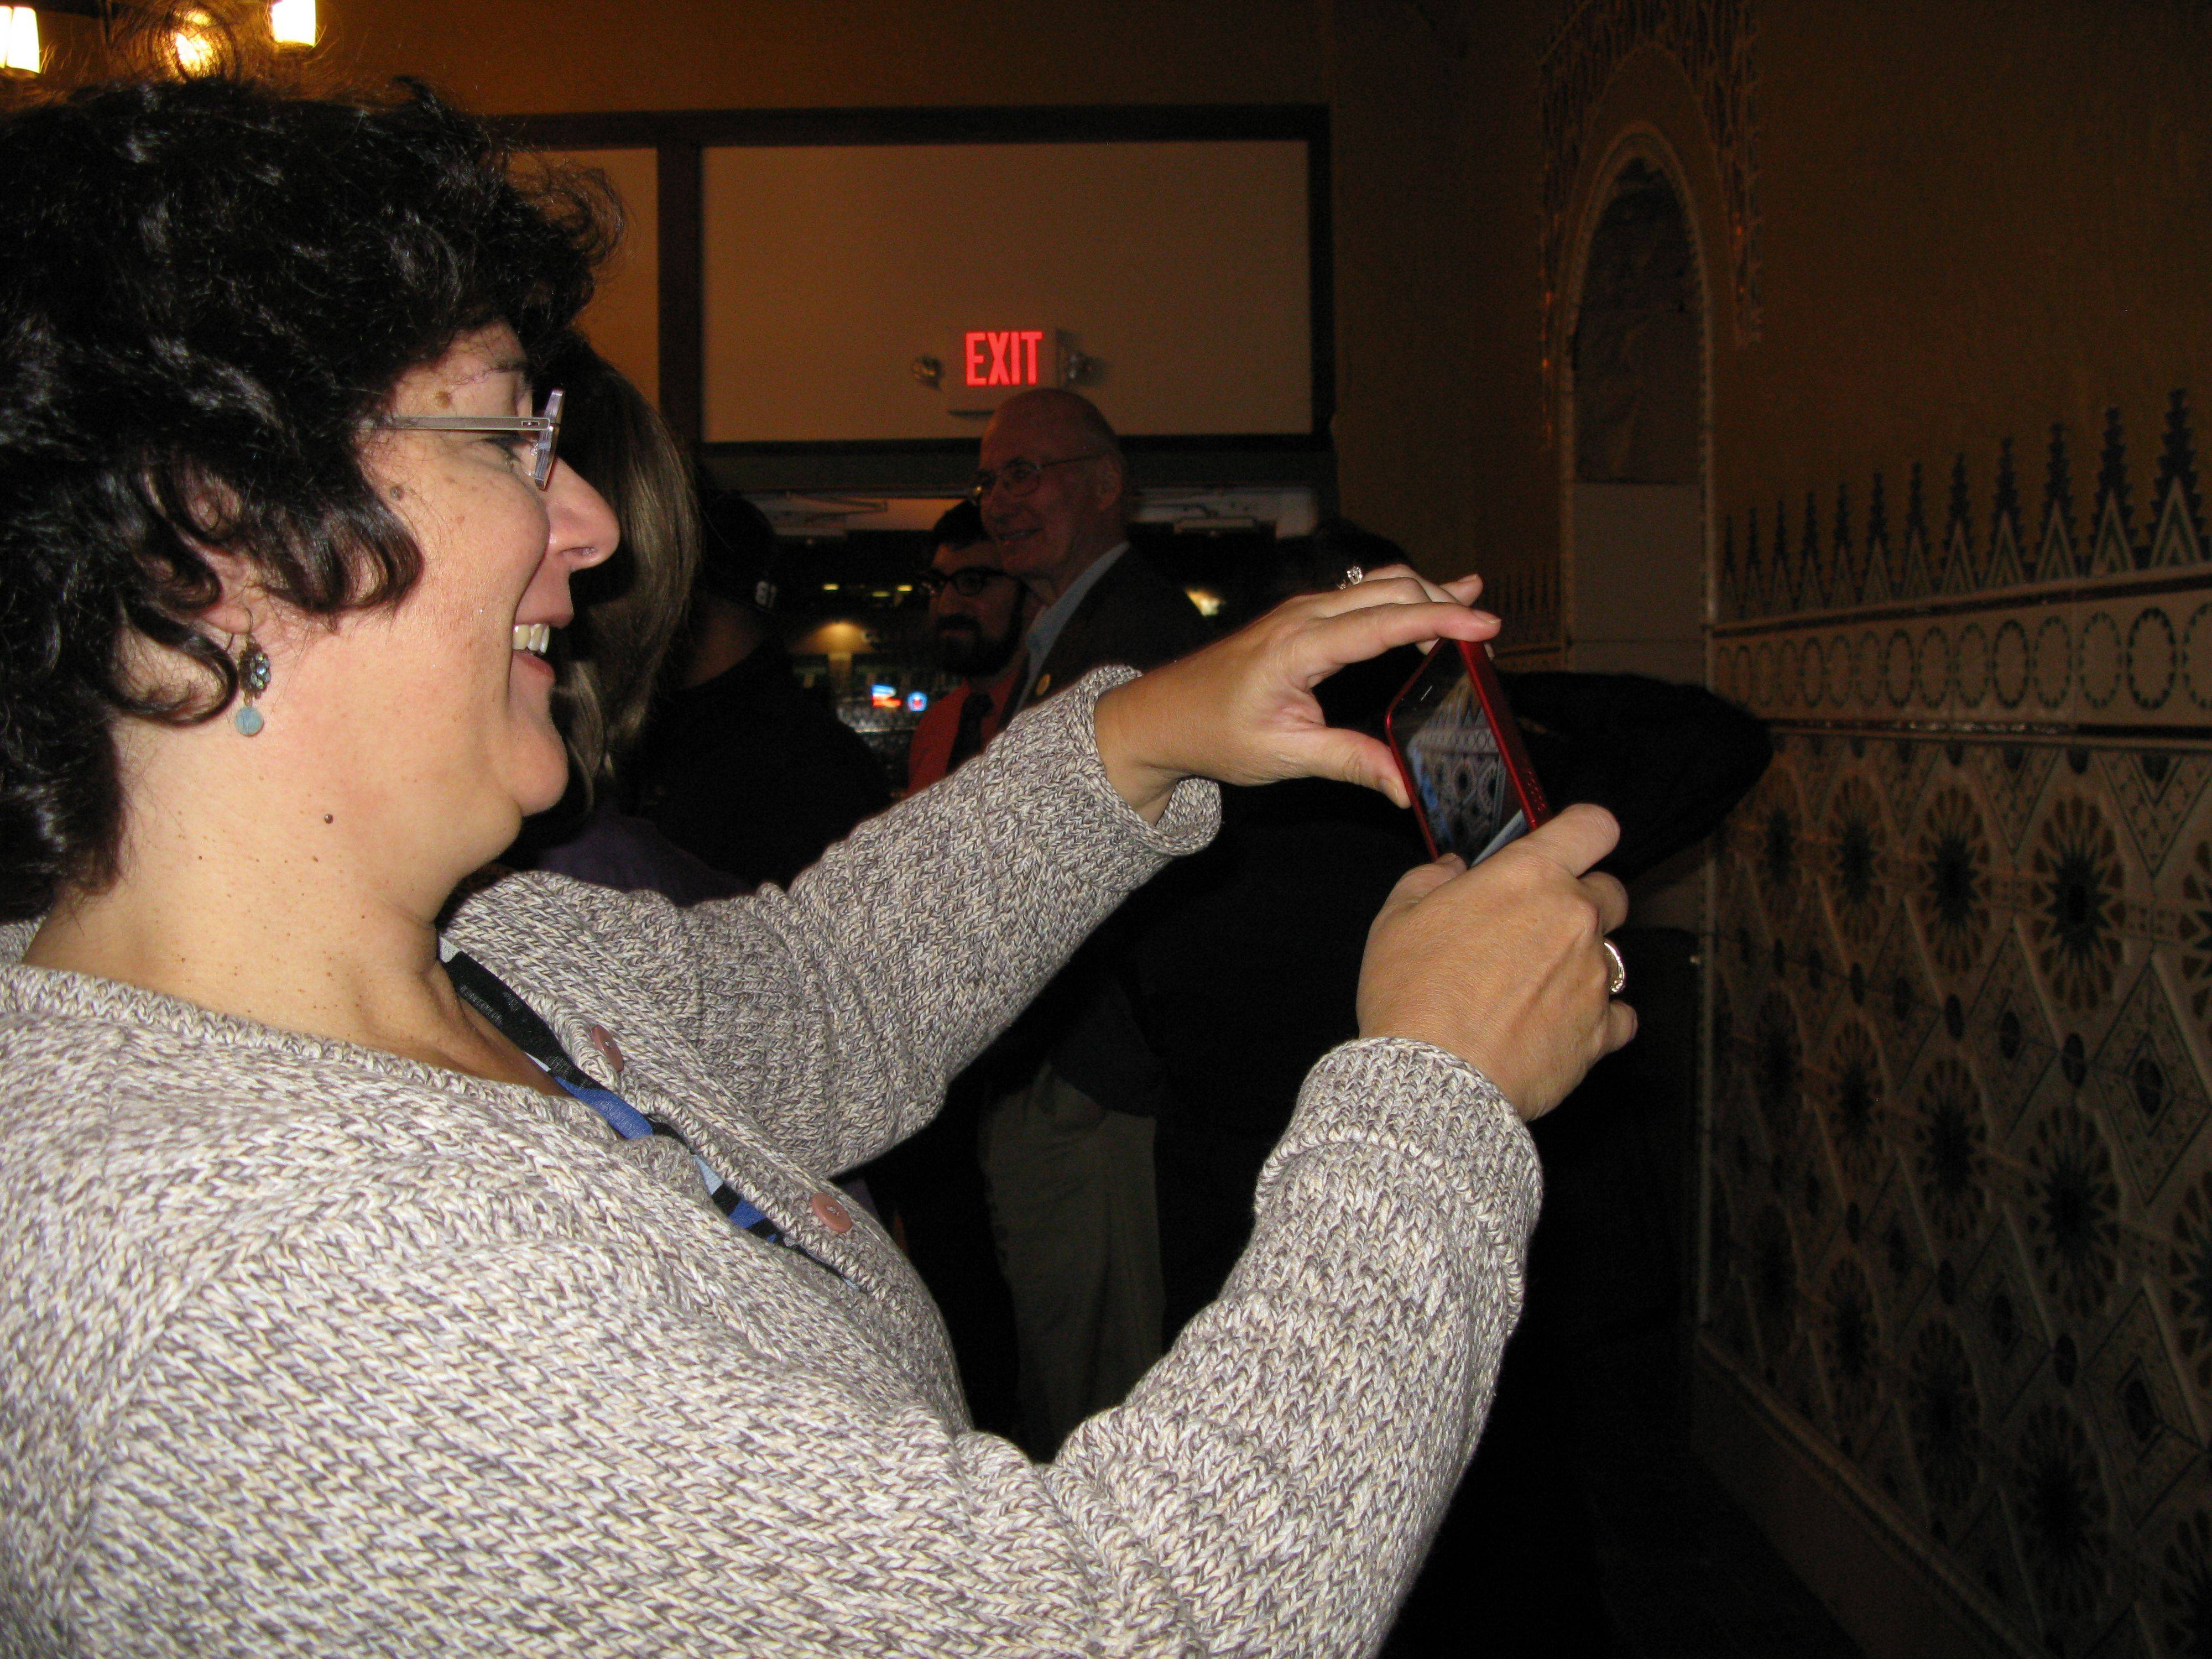 Lauren Wolf, one of the volunteers who helped with the Des Plaines Theatre's restoration, takes pictures of the terra cotta tiles in the renovated theater's lobby Friday during the grand reopening.